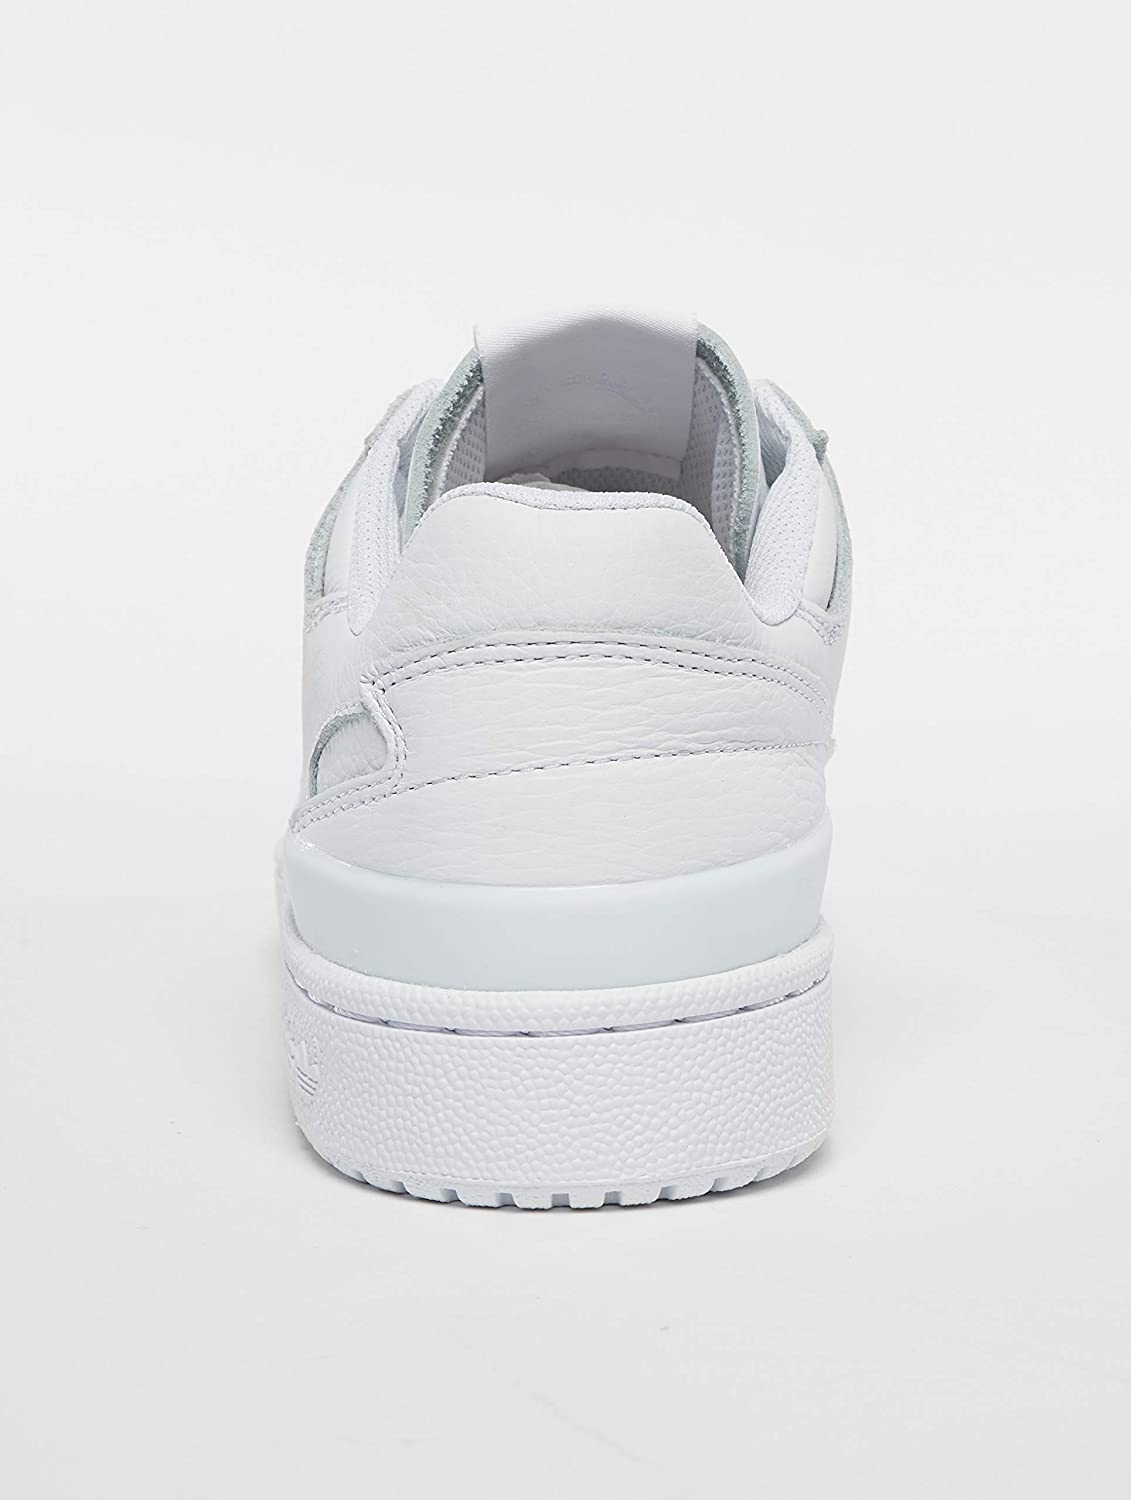 promo code fcc65 44466 Forum Adidas Originals Homme Chaussuresbaskets Decon Lo zaSt